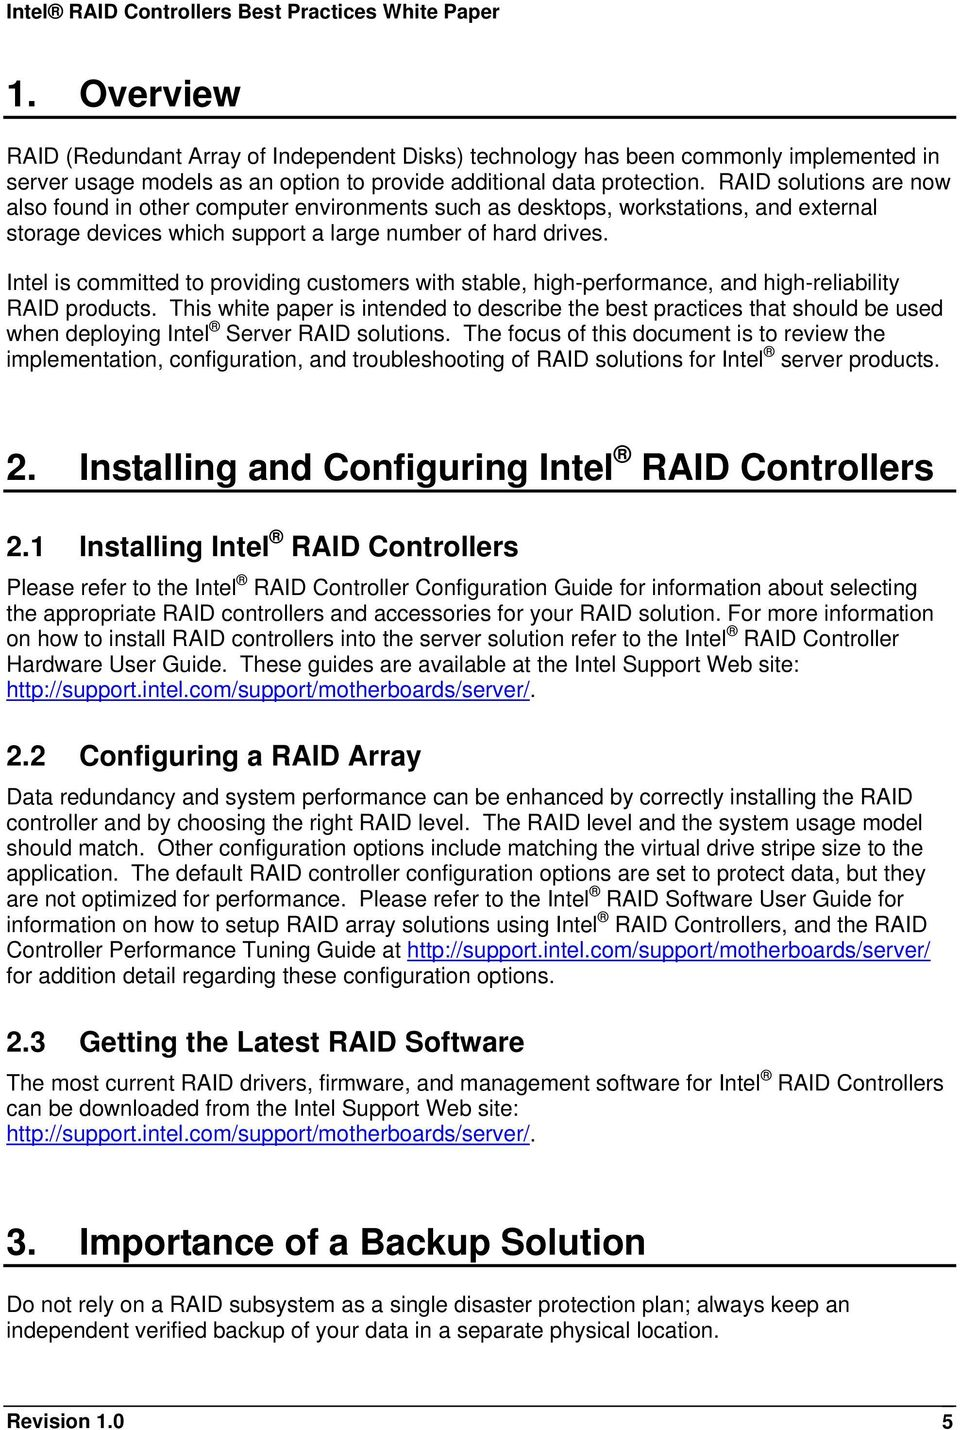 Intel is committed to providing customers with stable, high-performance, and high-reliability RAID products.